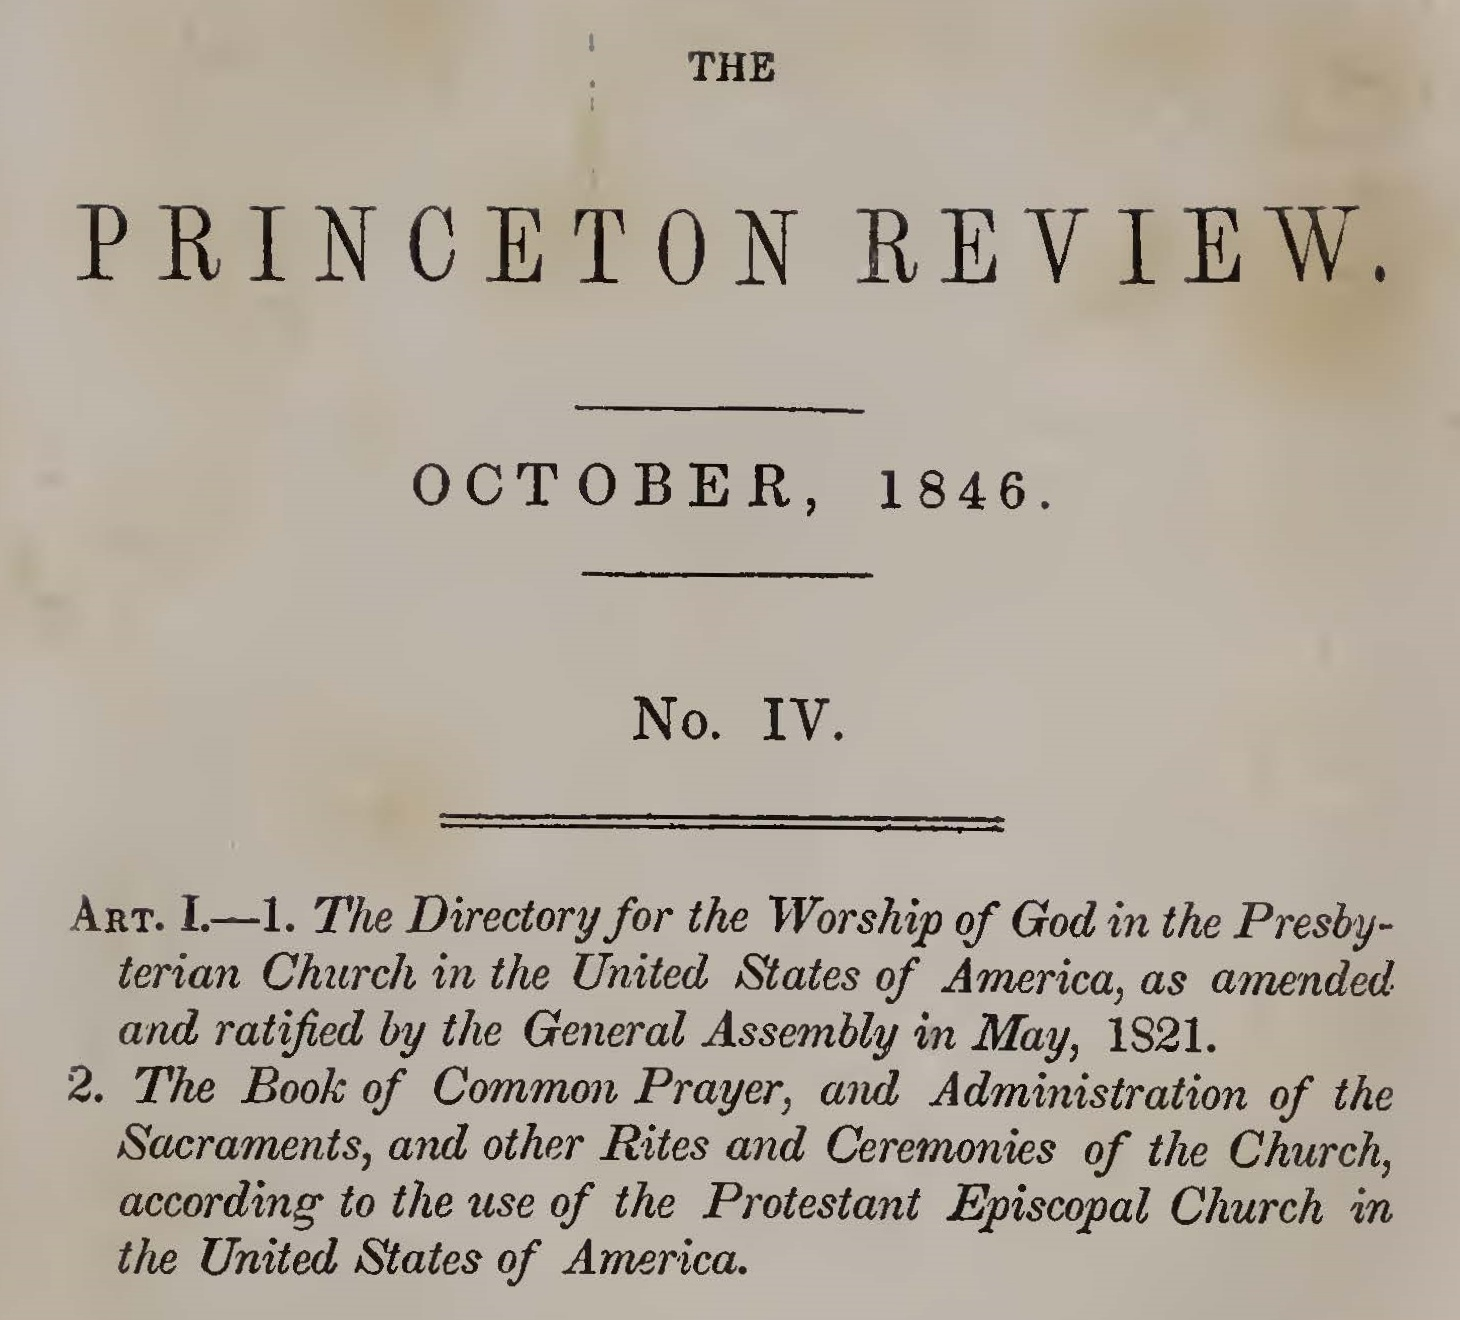 This is a 2-part article which appeared in the October 1846 and January 1847 issues of  The Princeton Review.